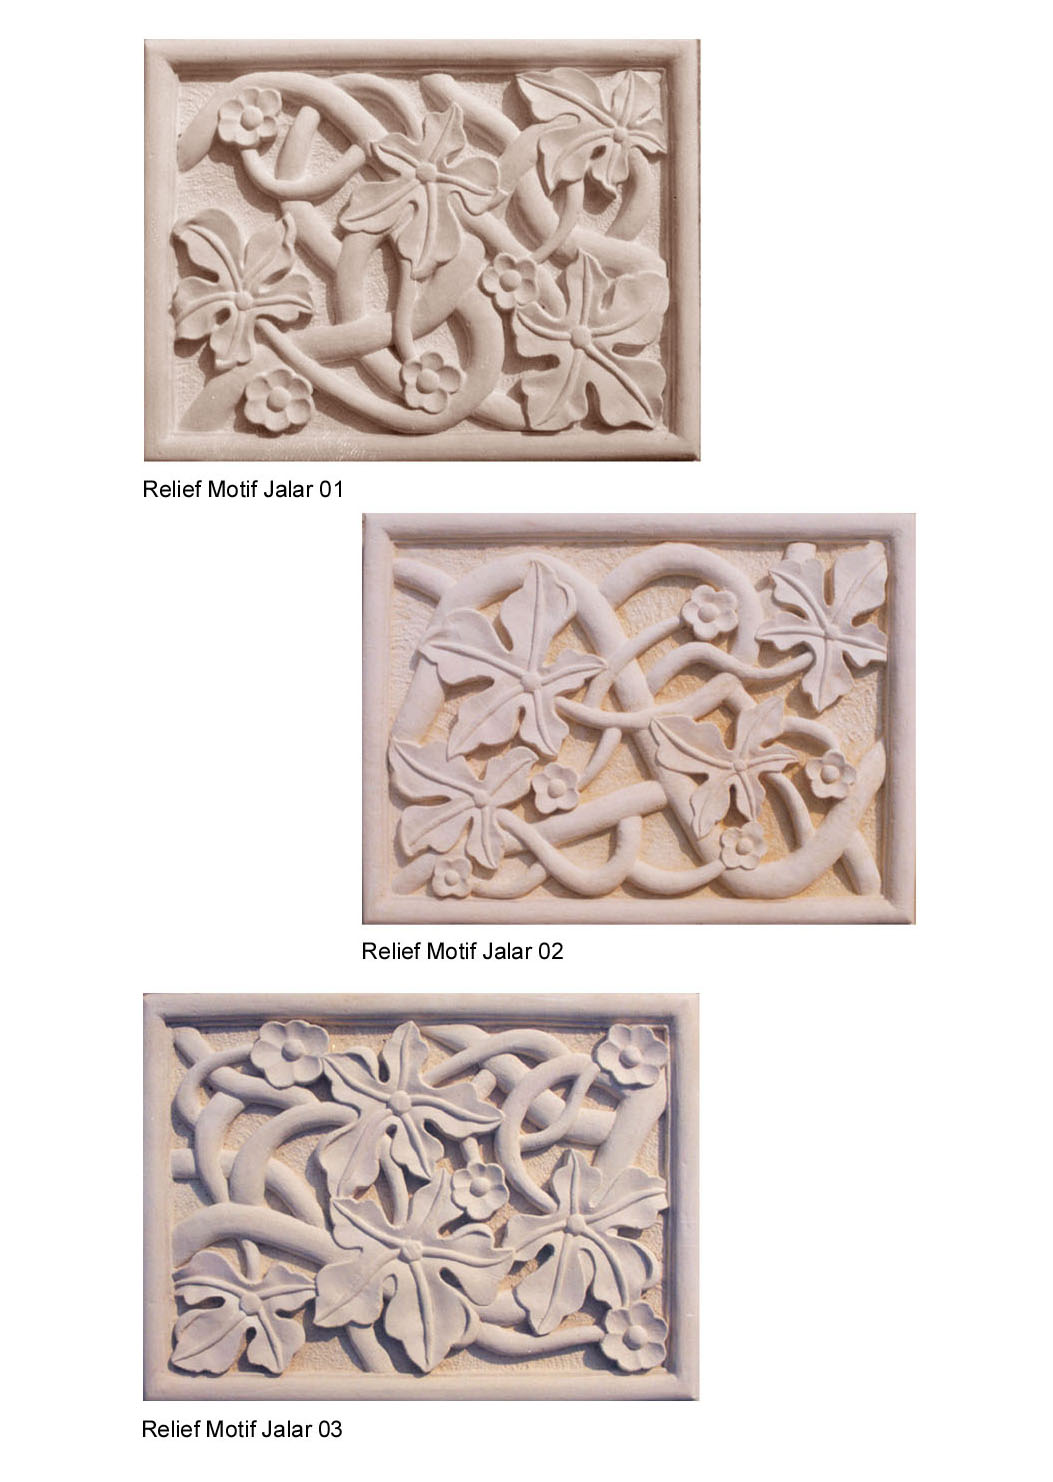 Bali Stone Carving Indonesia Carvings Relief Stone